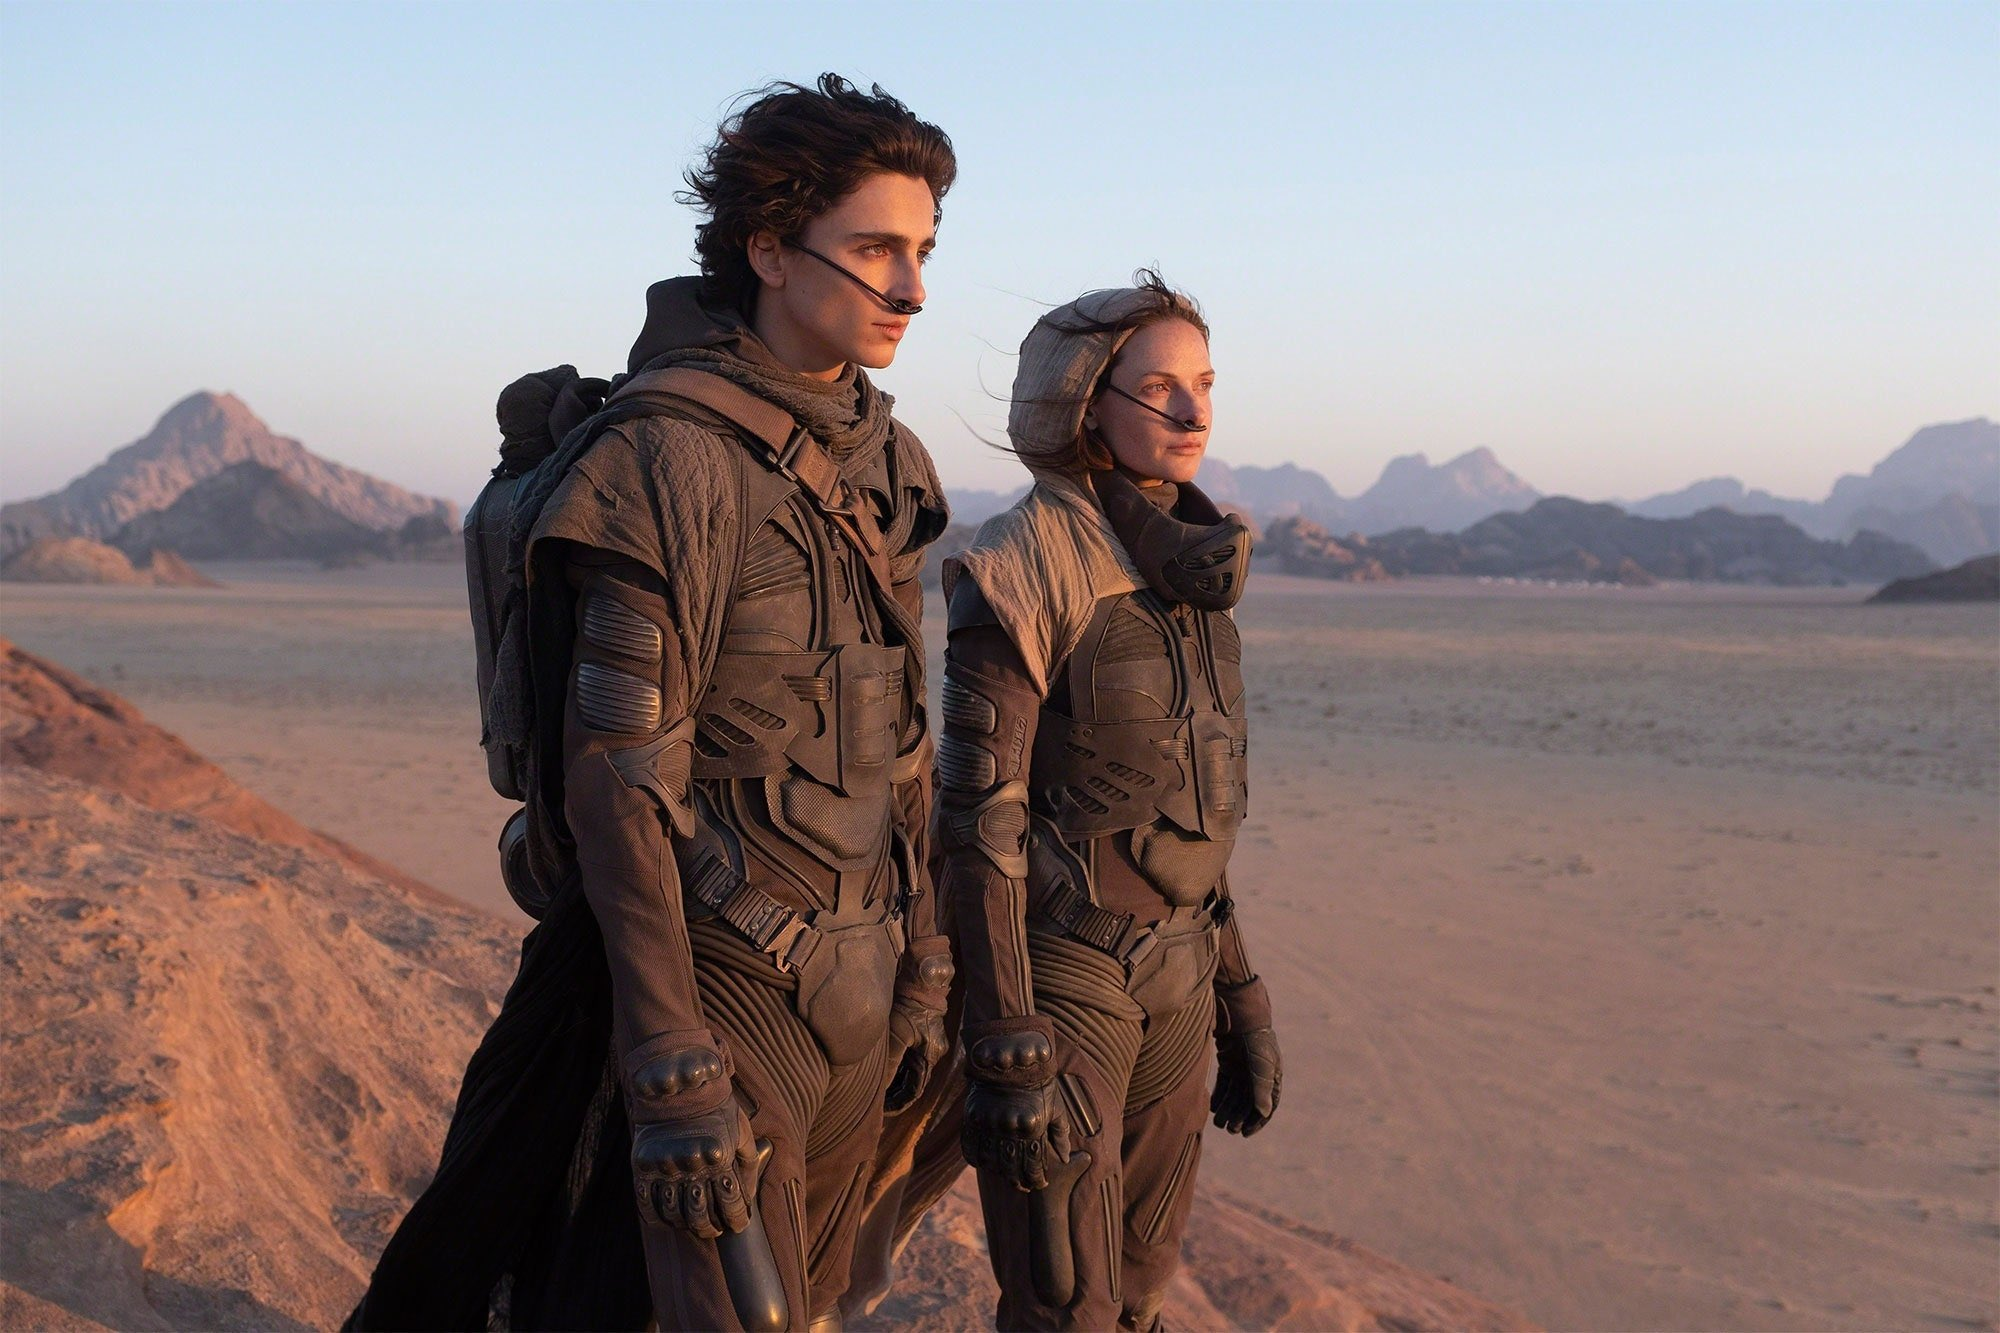 Warner Bros. have released the final trailer for the upcoming film adaptation of Frank Herbert's sci-fi epic novel Dune.